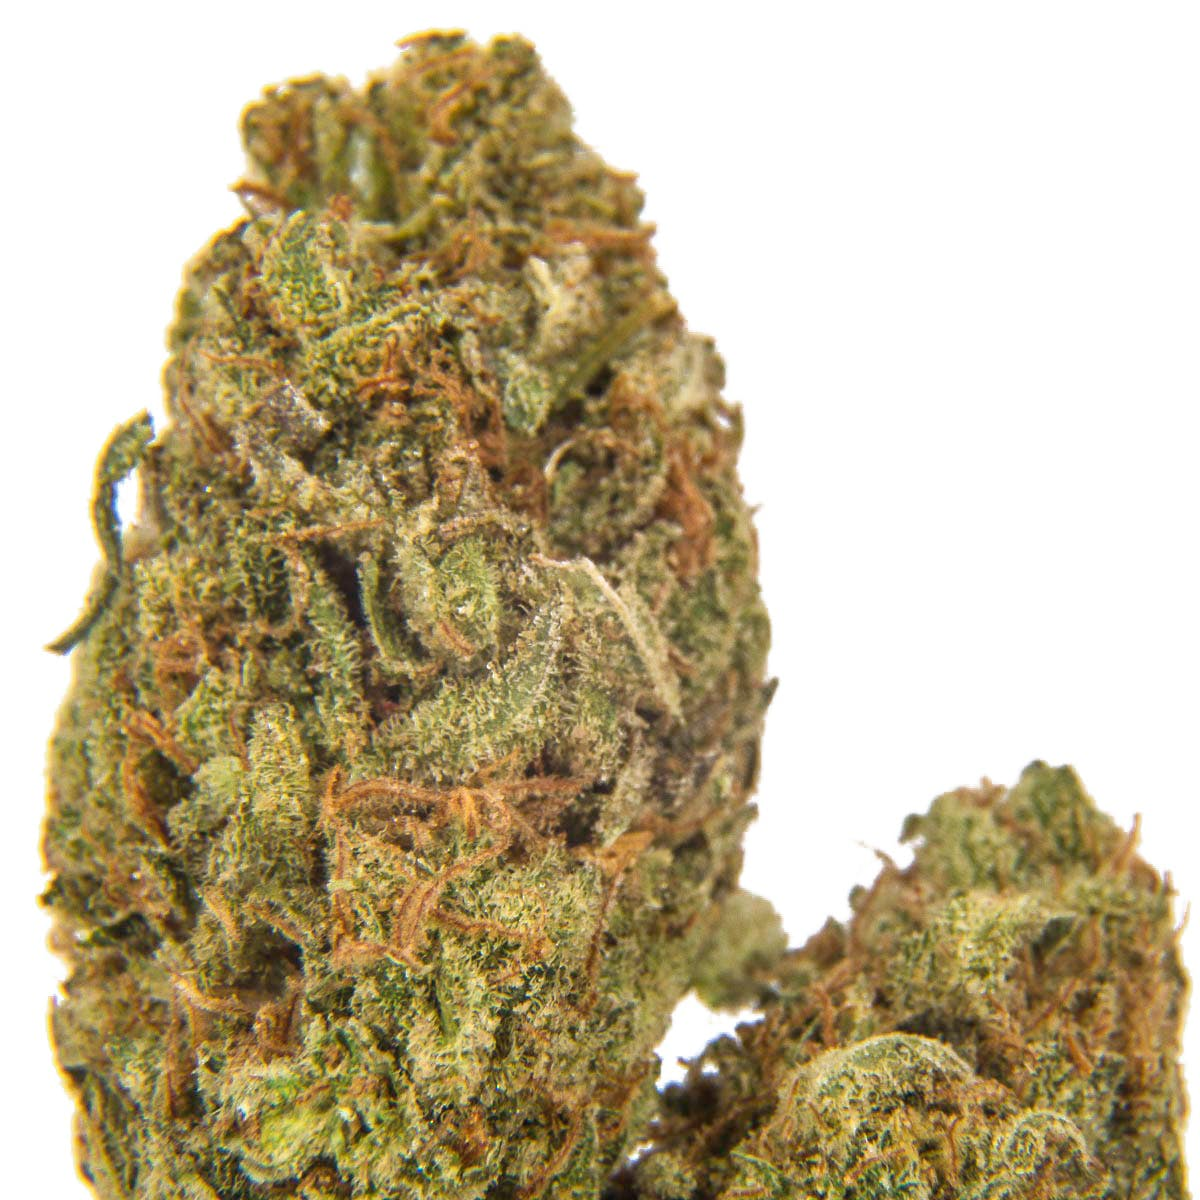 marijuana-dispensaries-fire-and-glory-fullerton-in-fullerton-amnesia-haze